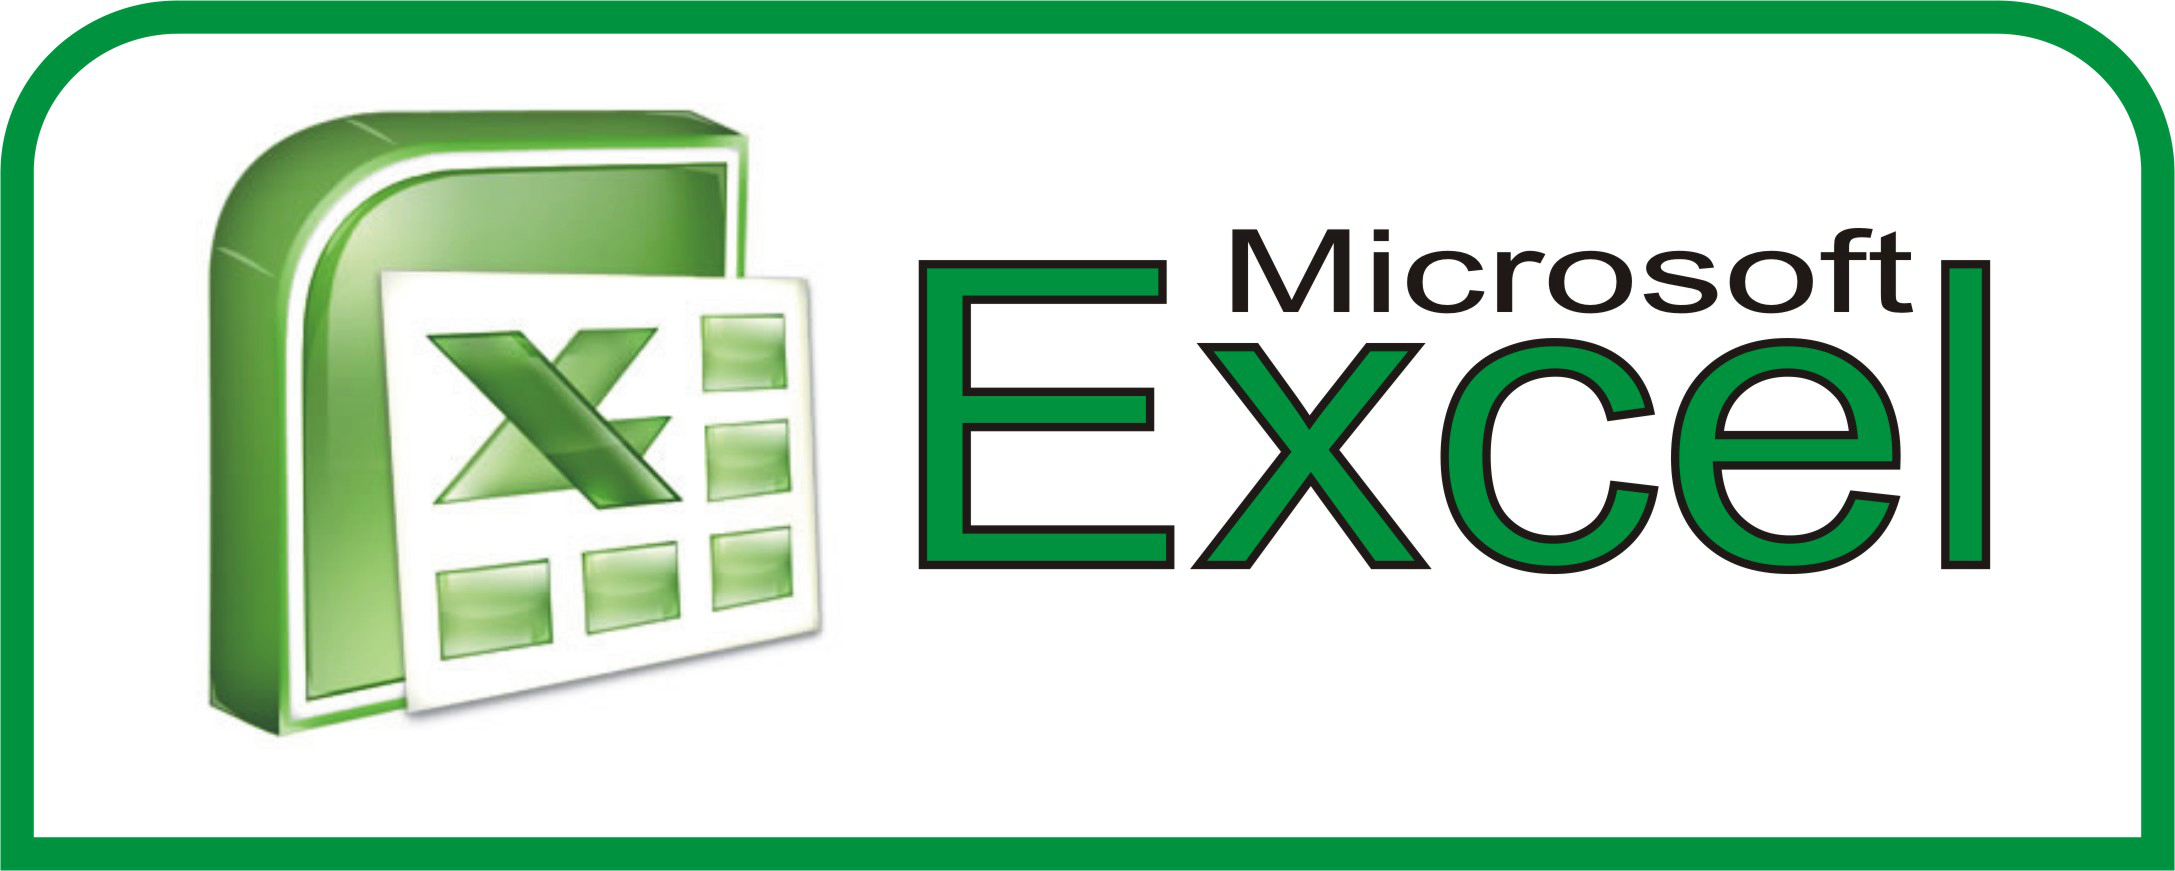 Ediblewildsus  Fascinating  Excel Shortcuts You Probably Didnt Know About  Techdissected With Goodlooking Count Functions Excel Besides Normdist Function In Excel Furthermore Excel Daily Calendar With Divine Colon In Excel Also Excel Help Line In Addition Capacity Planning Tools Excel And Replace With In Excel As Well As True False Excel Formula Additionally Vba Excel Comment From Techdissectedcom With Ediblewildsus  Goodlooking  Excel Shortcuts You Probably Didnt Know About  Techdissected With Divine Count Functions Excel Besides Normdist Function In Excel Furthermore Excel Daily Calendar And Fascinating Colon In Excel Also Excel Help Line In Addition Capacity Planning Tools Excel From Techdissectedcom